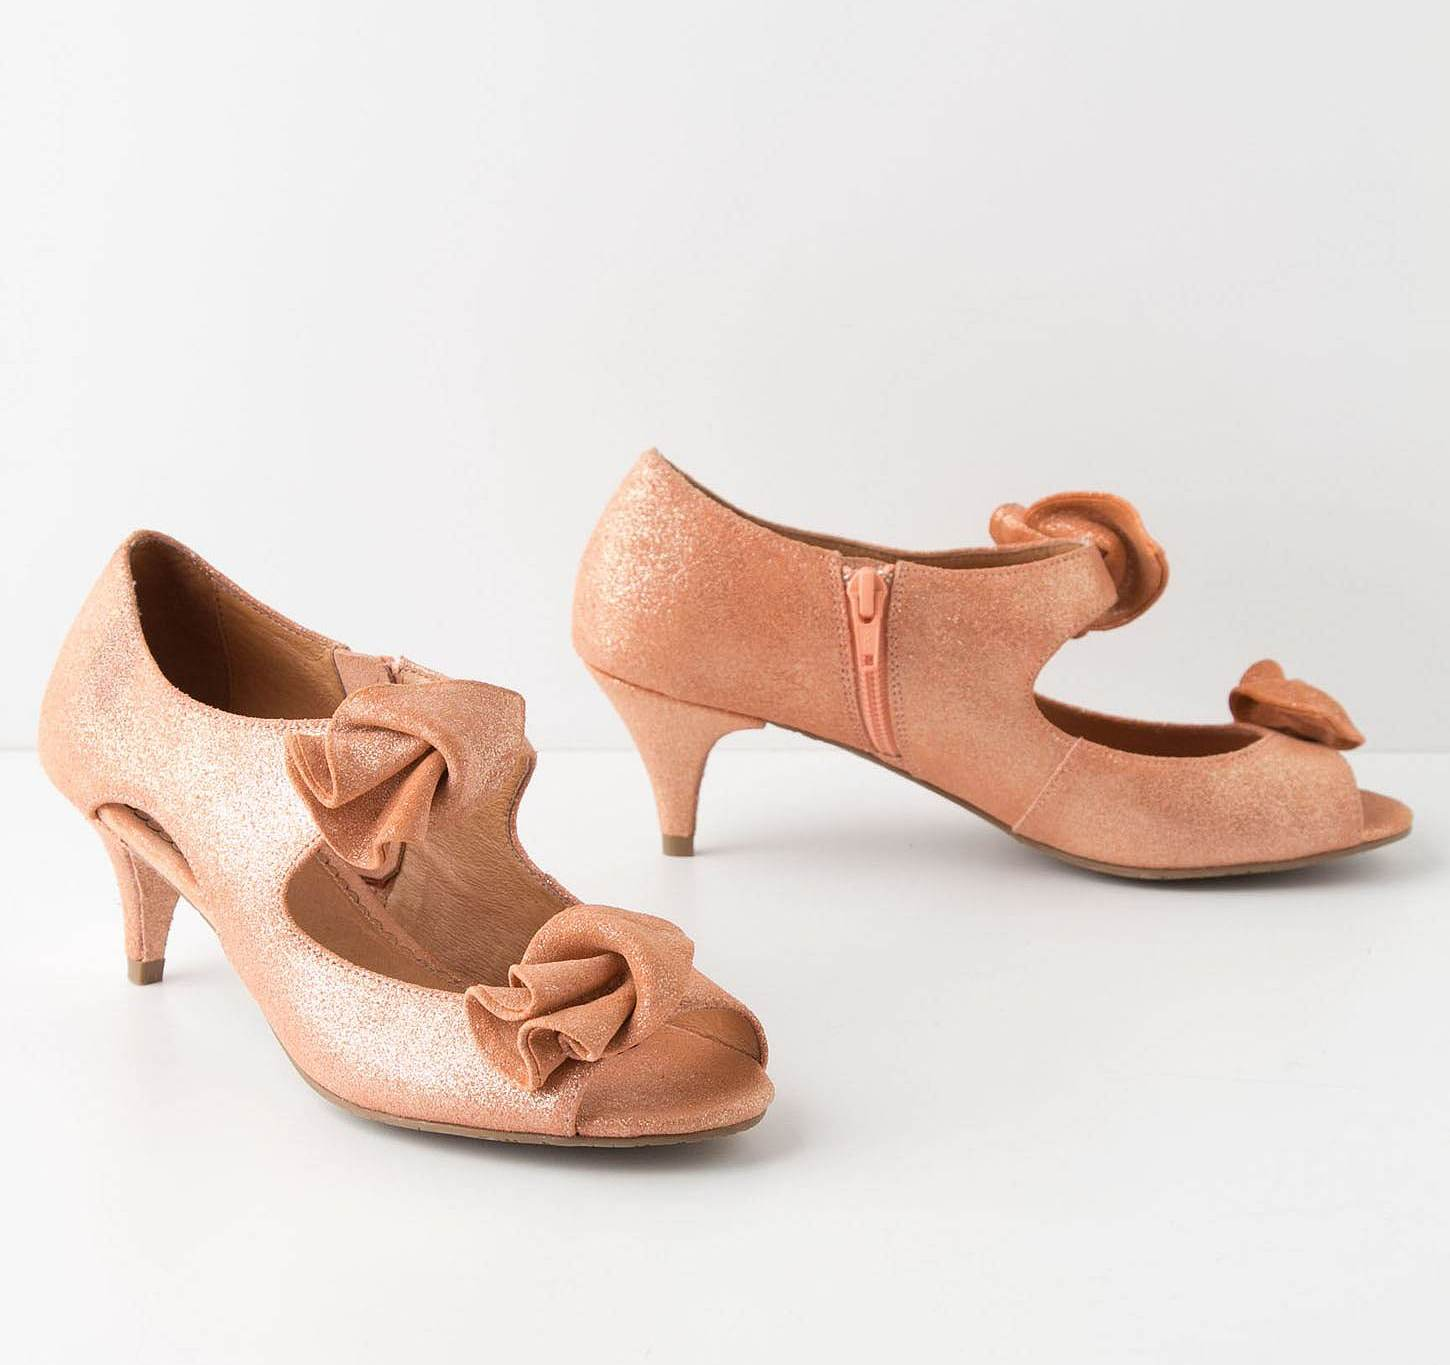 Satin Kitten Heel Shoes